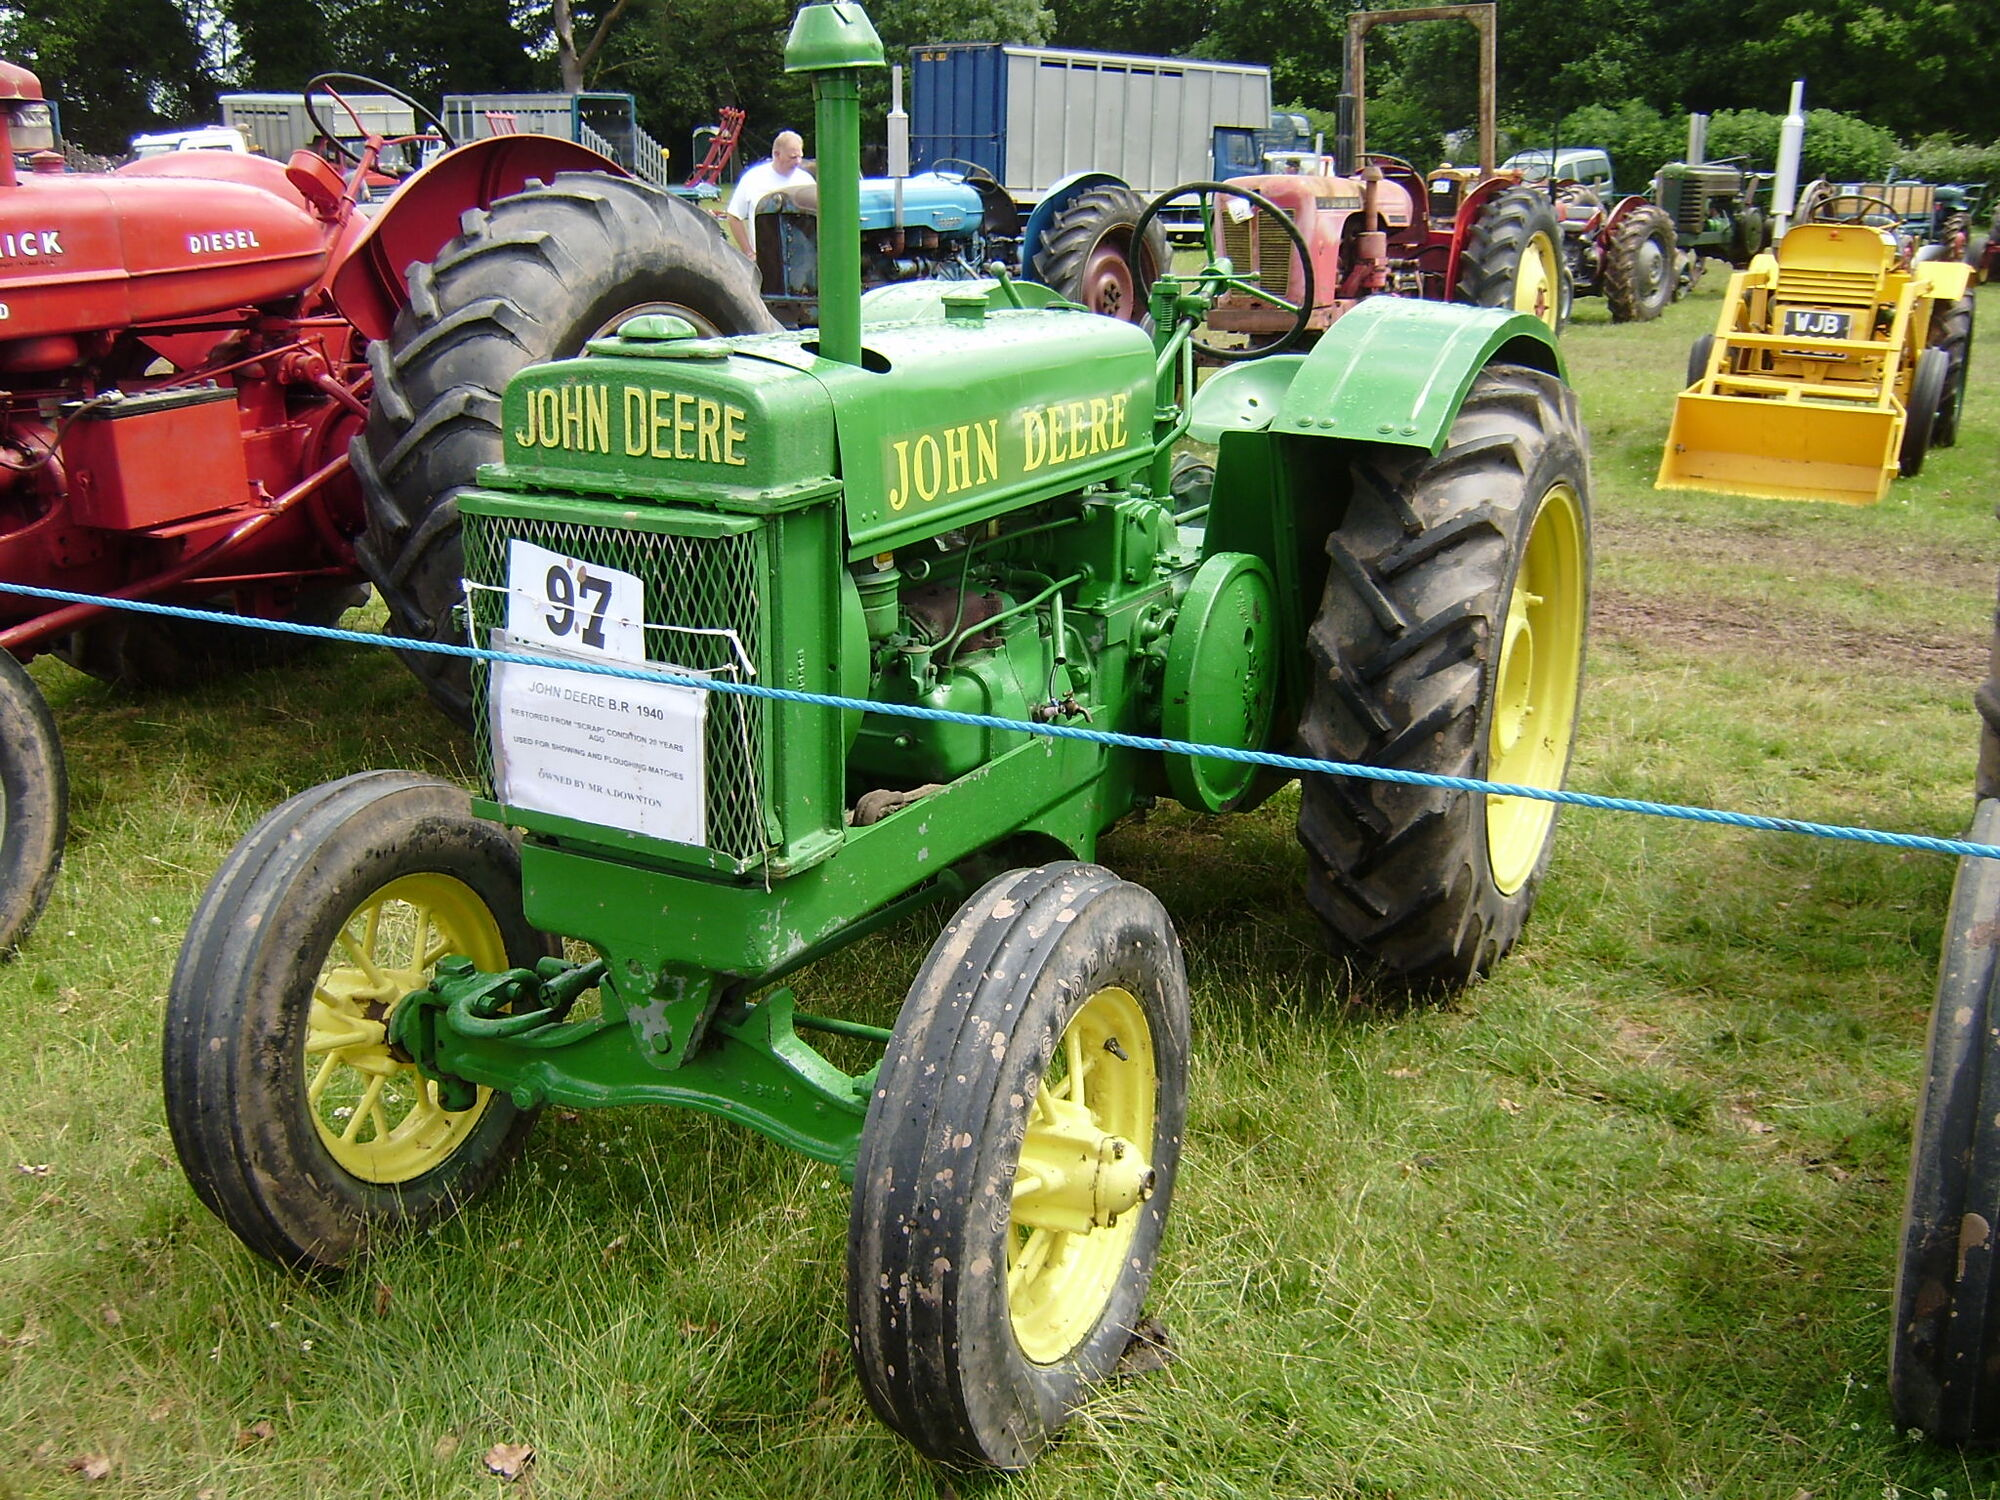 List of John Deere tractors | Tractor & Construction Plant Wiki